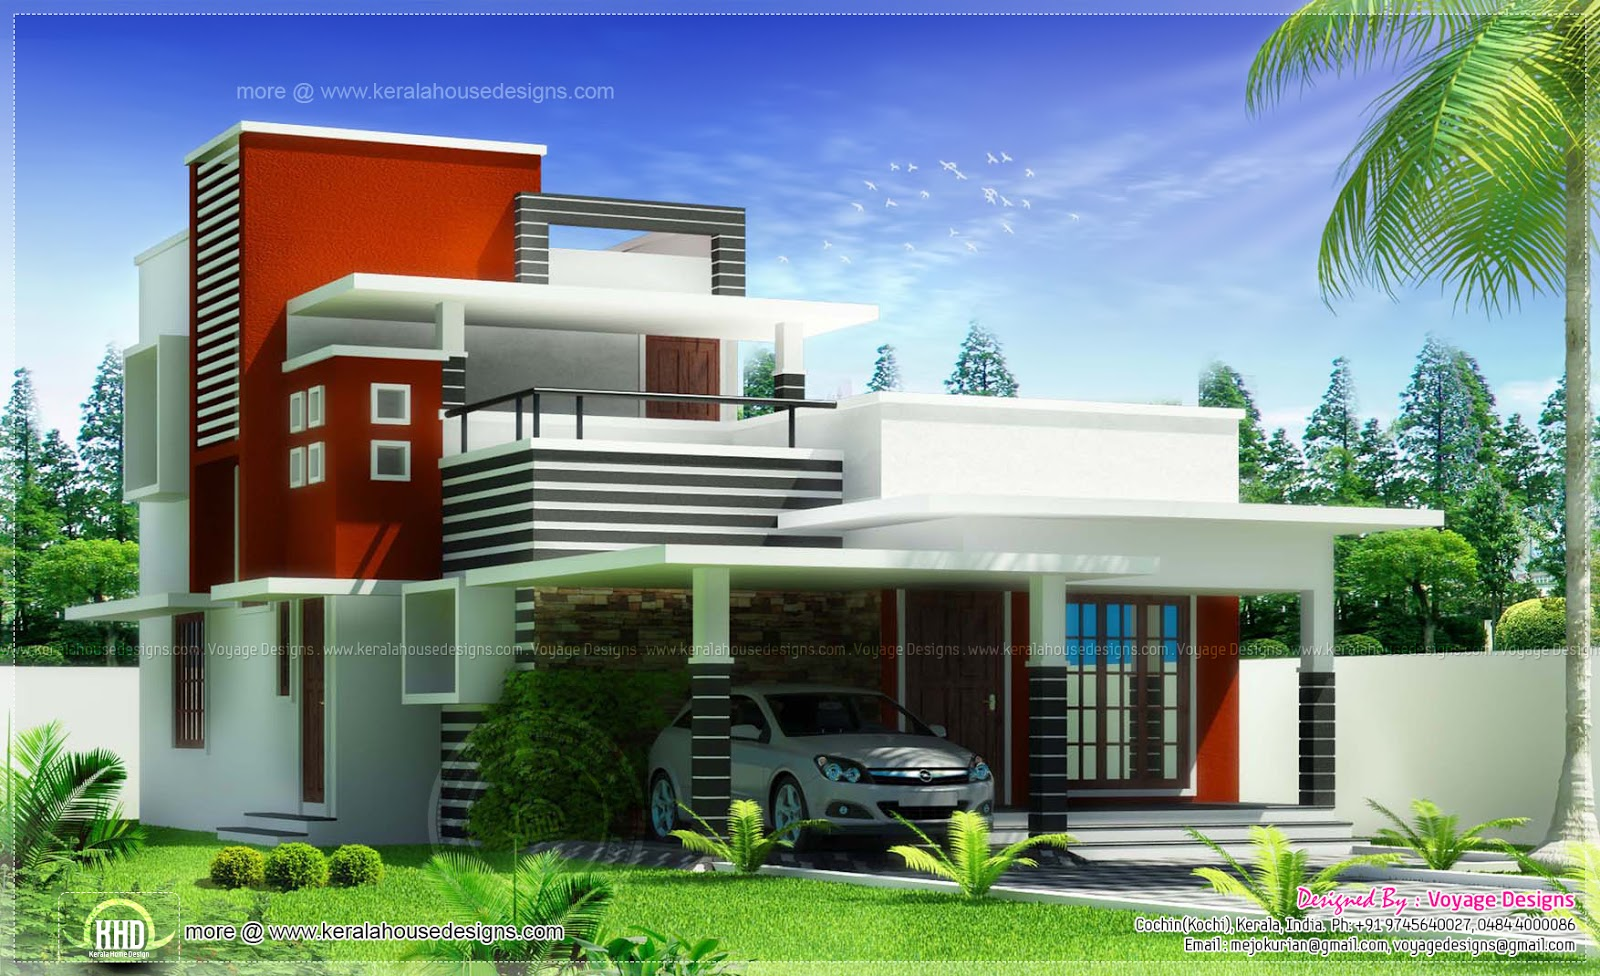 3 bed room contemporary style house kerala home design for Www kerala house designs com